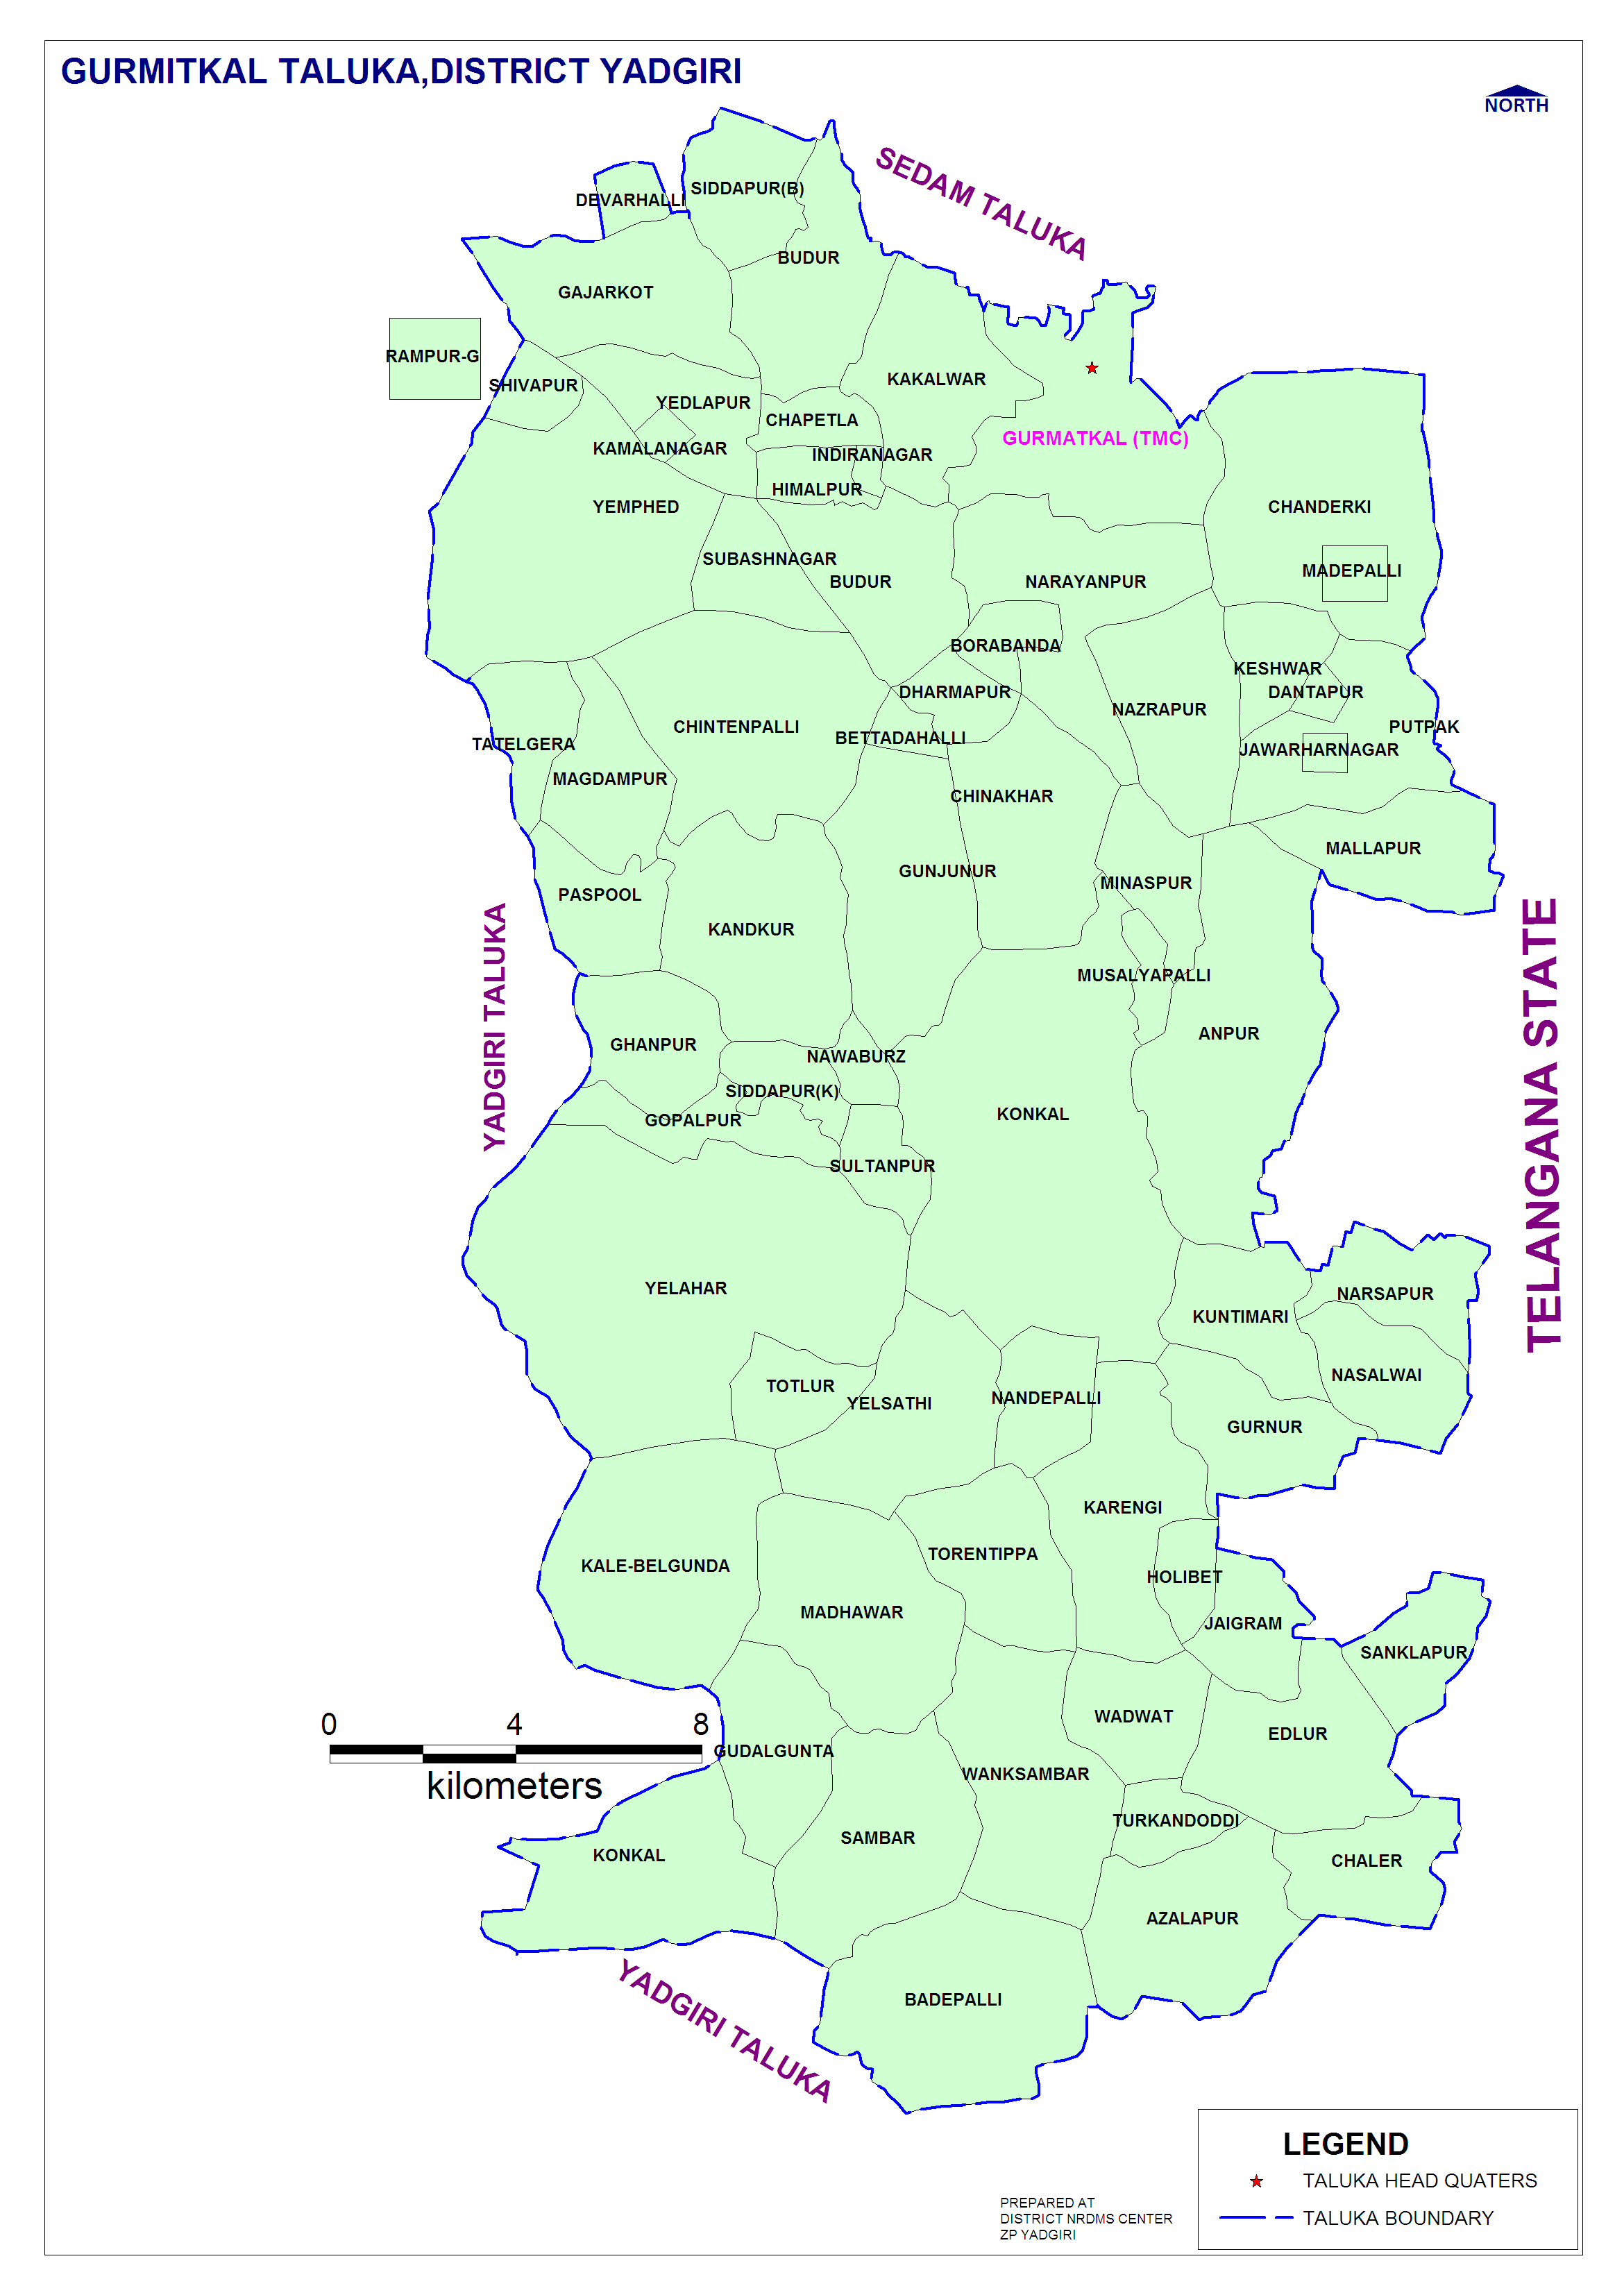 Map of District | District Yadgiri, Government of Karnataka